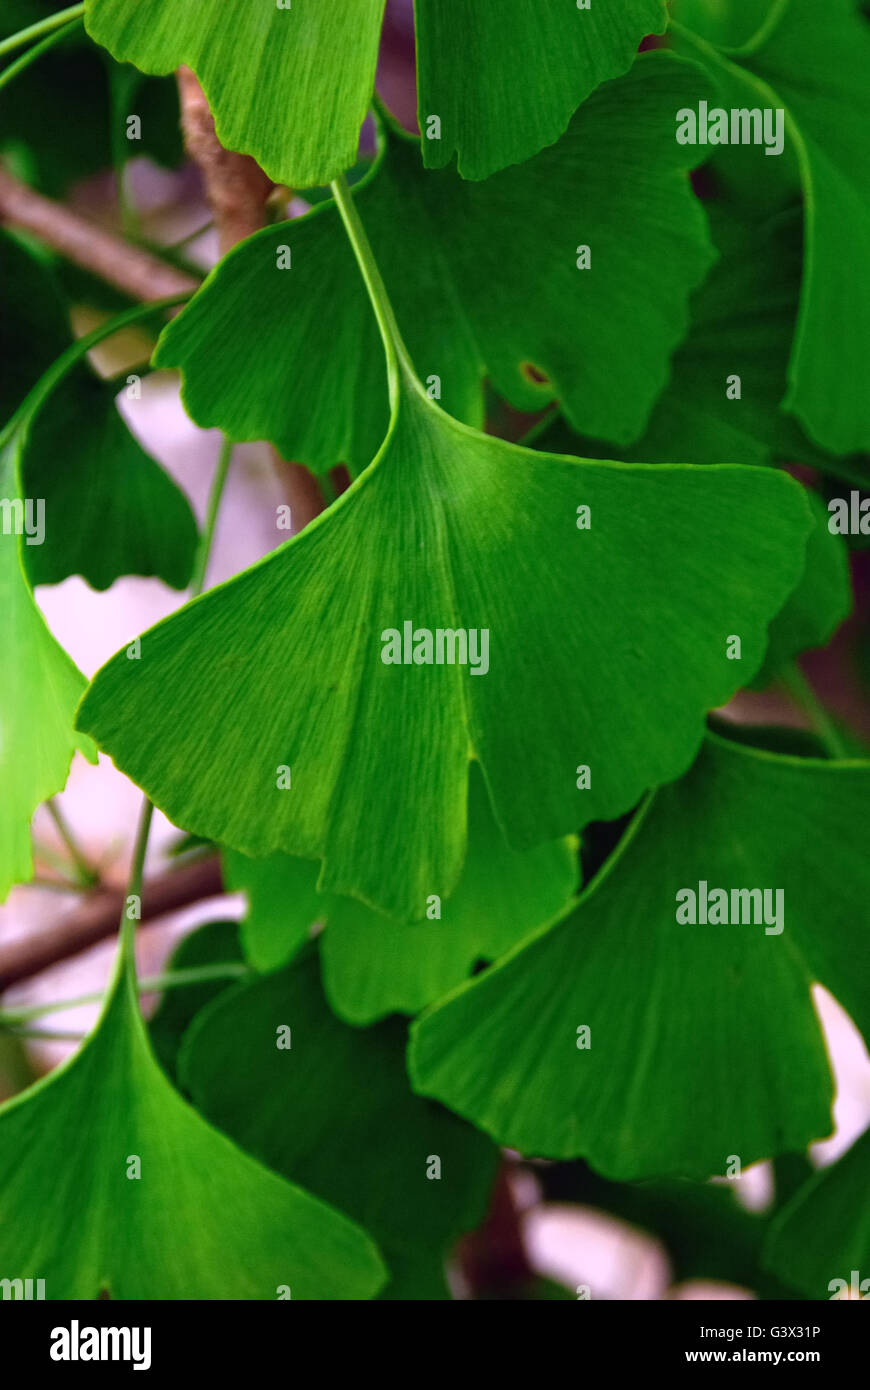 Leaf of the ginkgo. Ginkgo biloba tree, known as ginkgo or as the maidenhair tree, is the only living species in - Stock Image